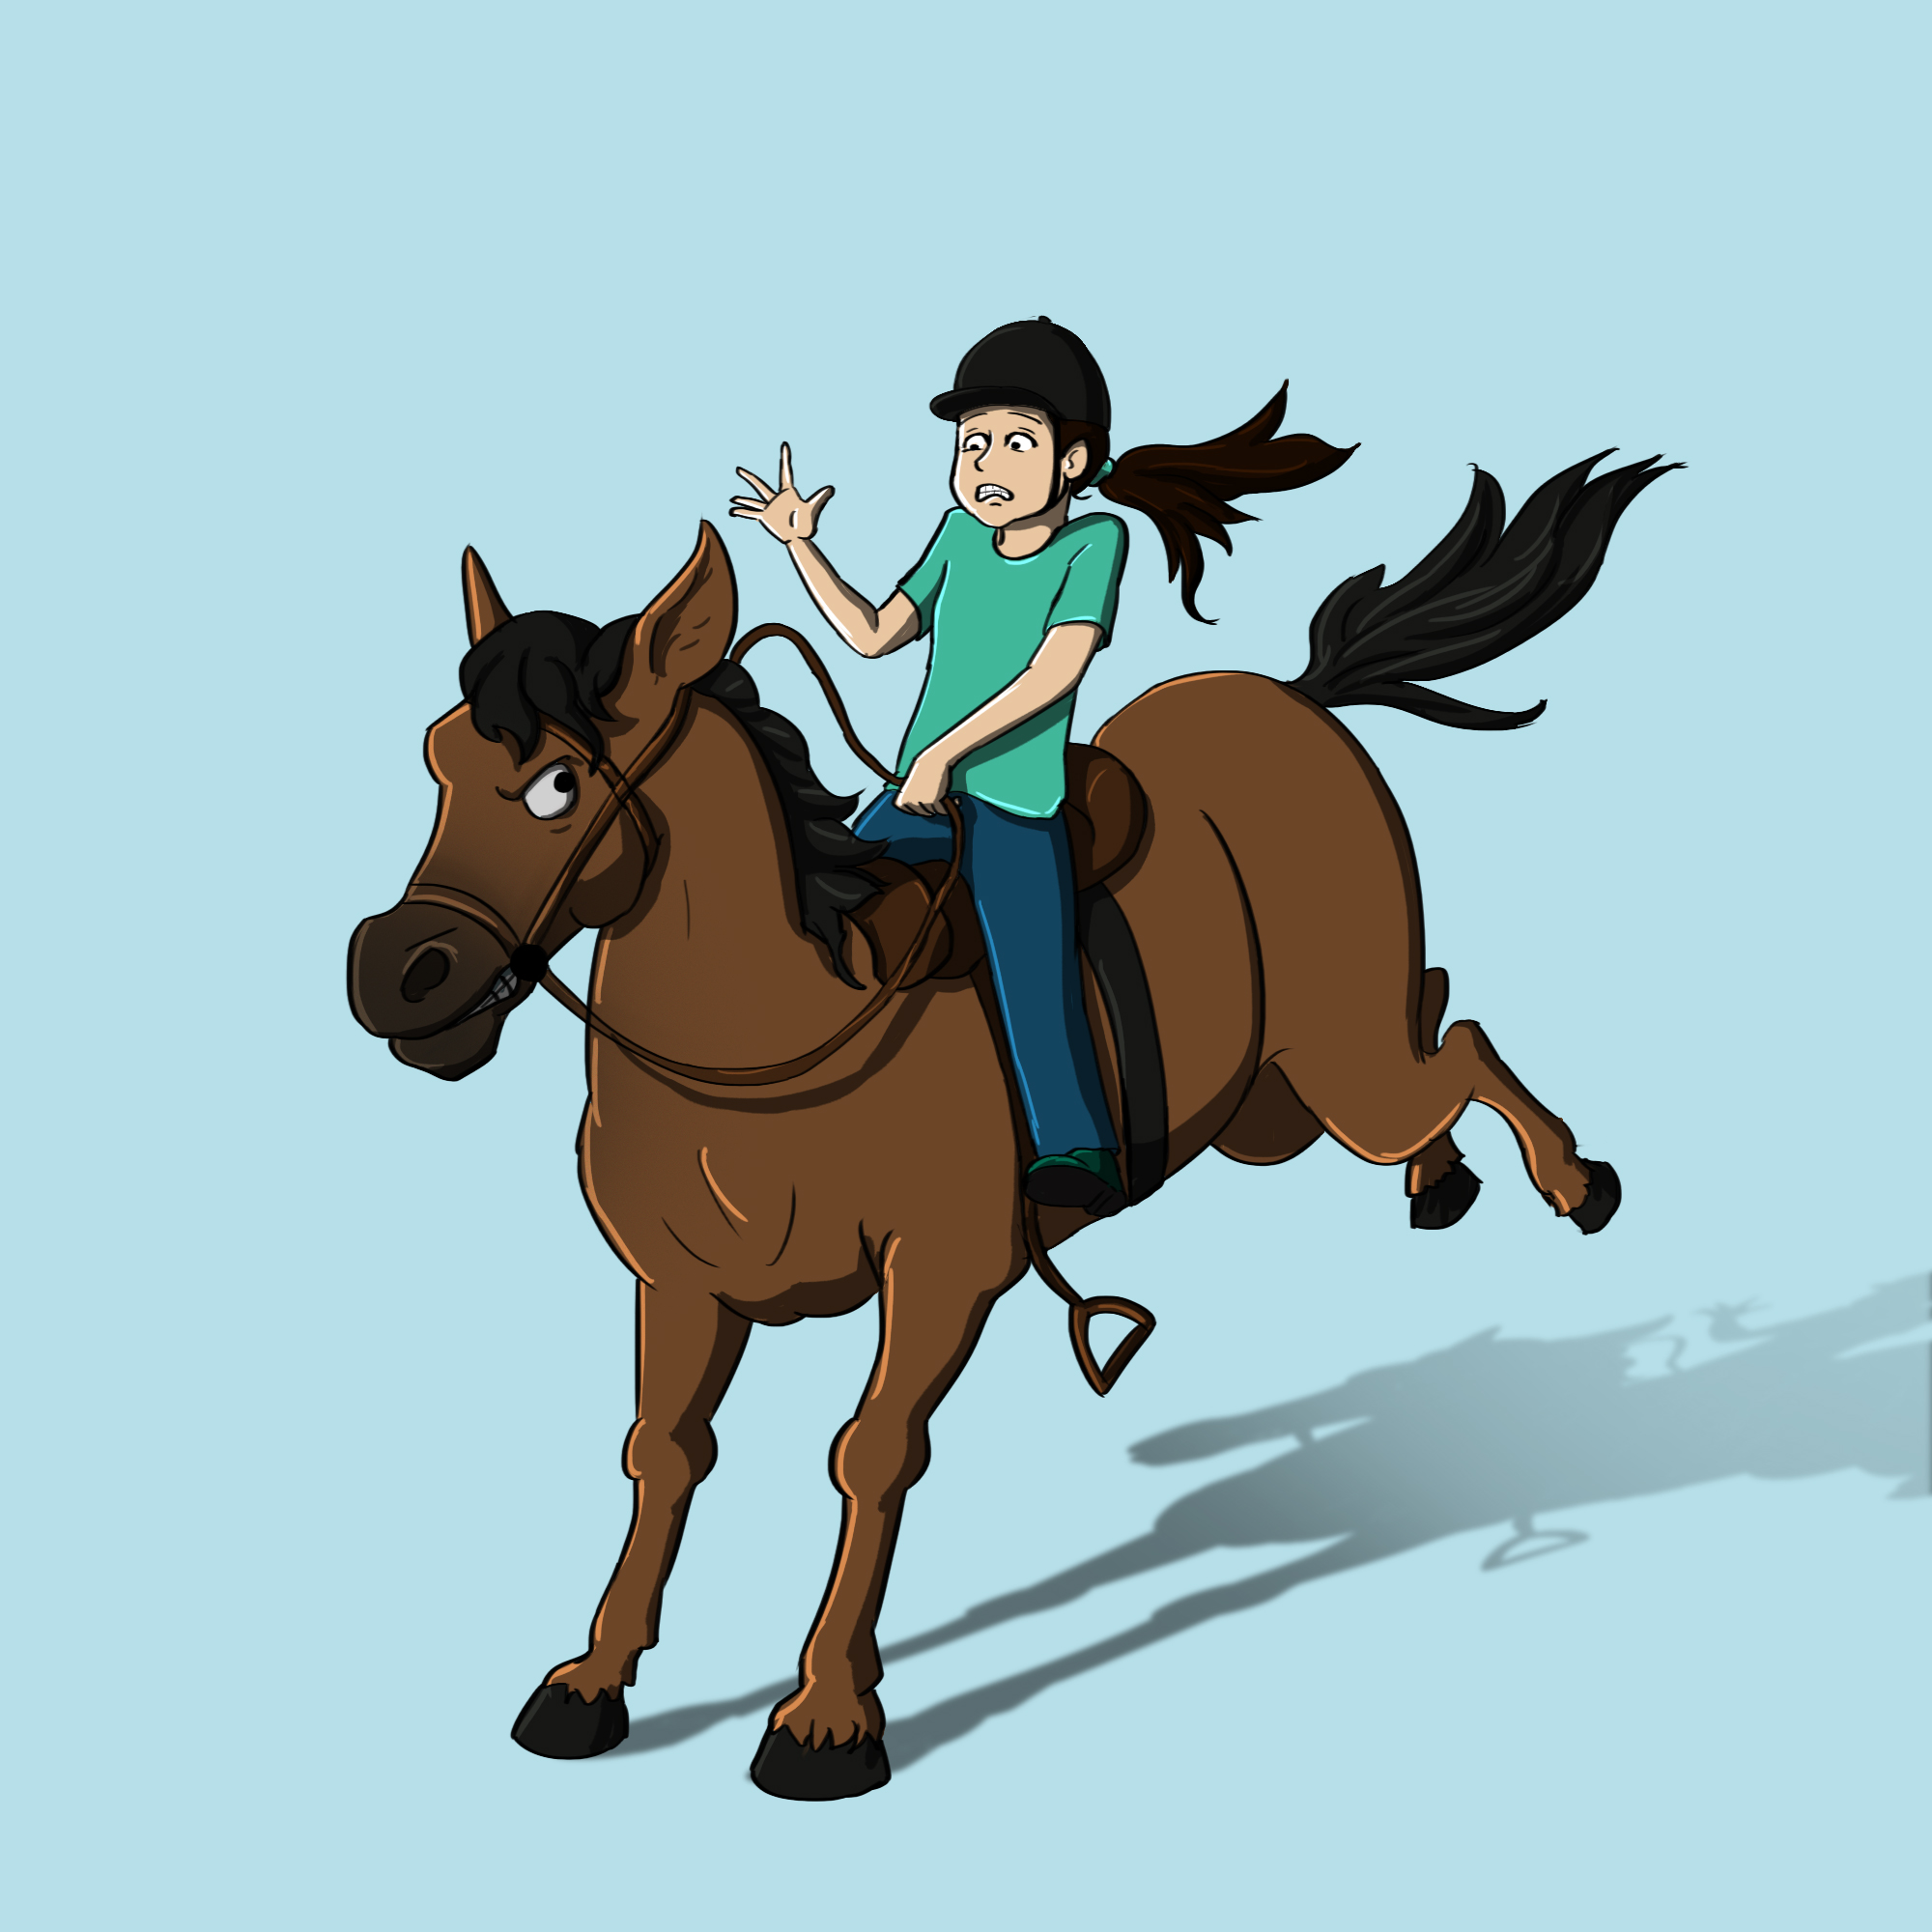 Common horse riding mistakes